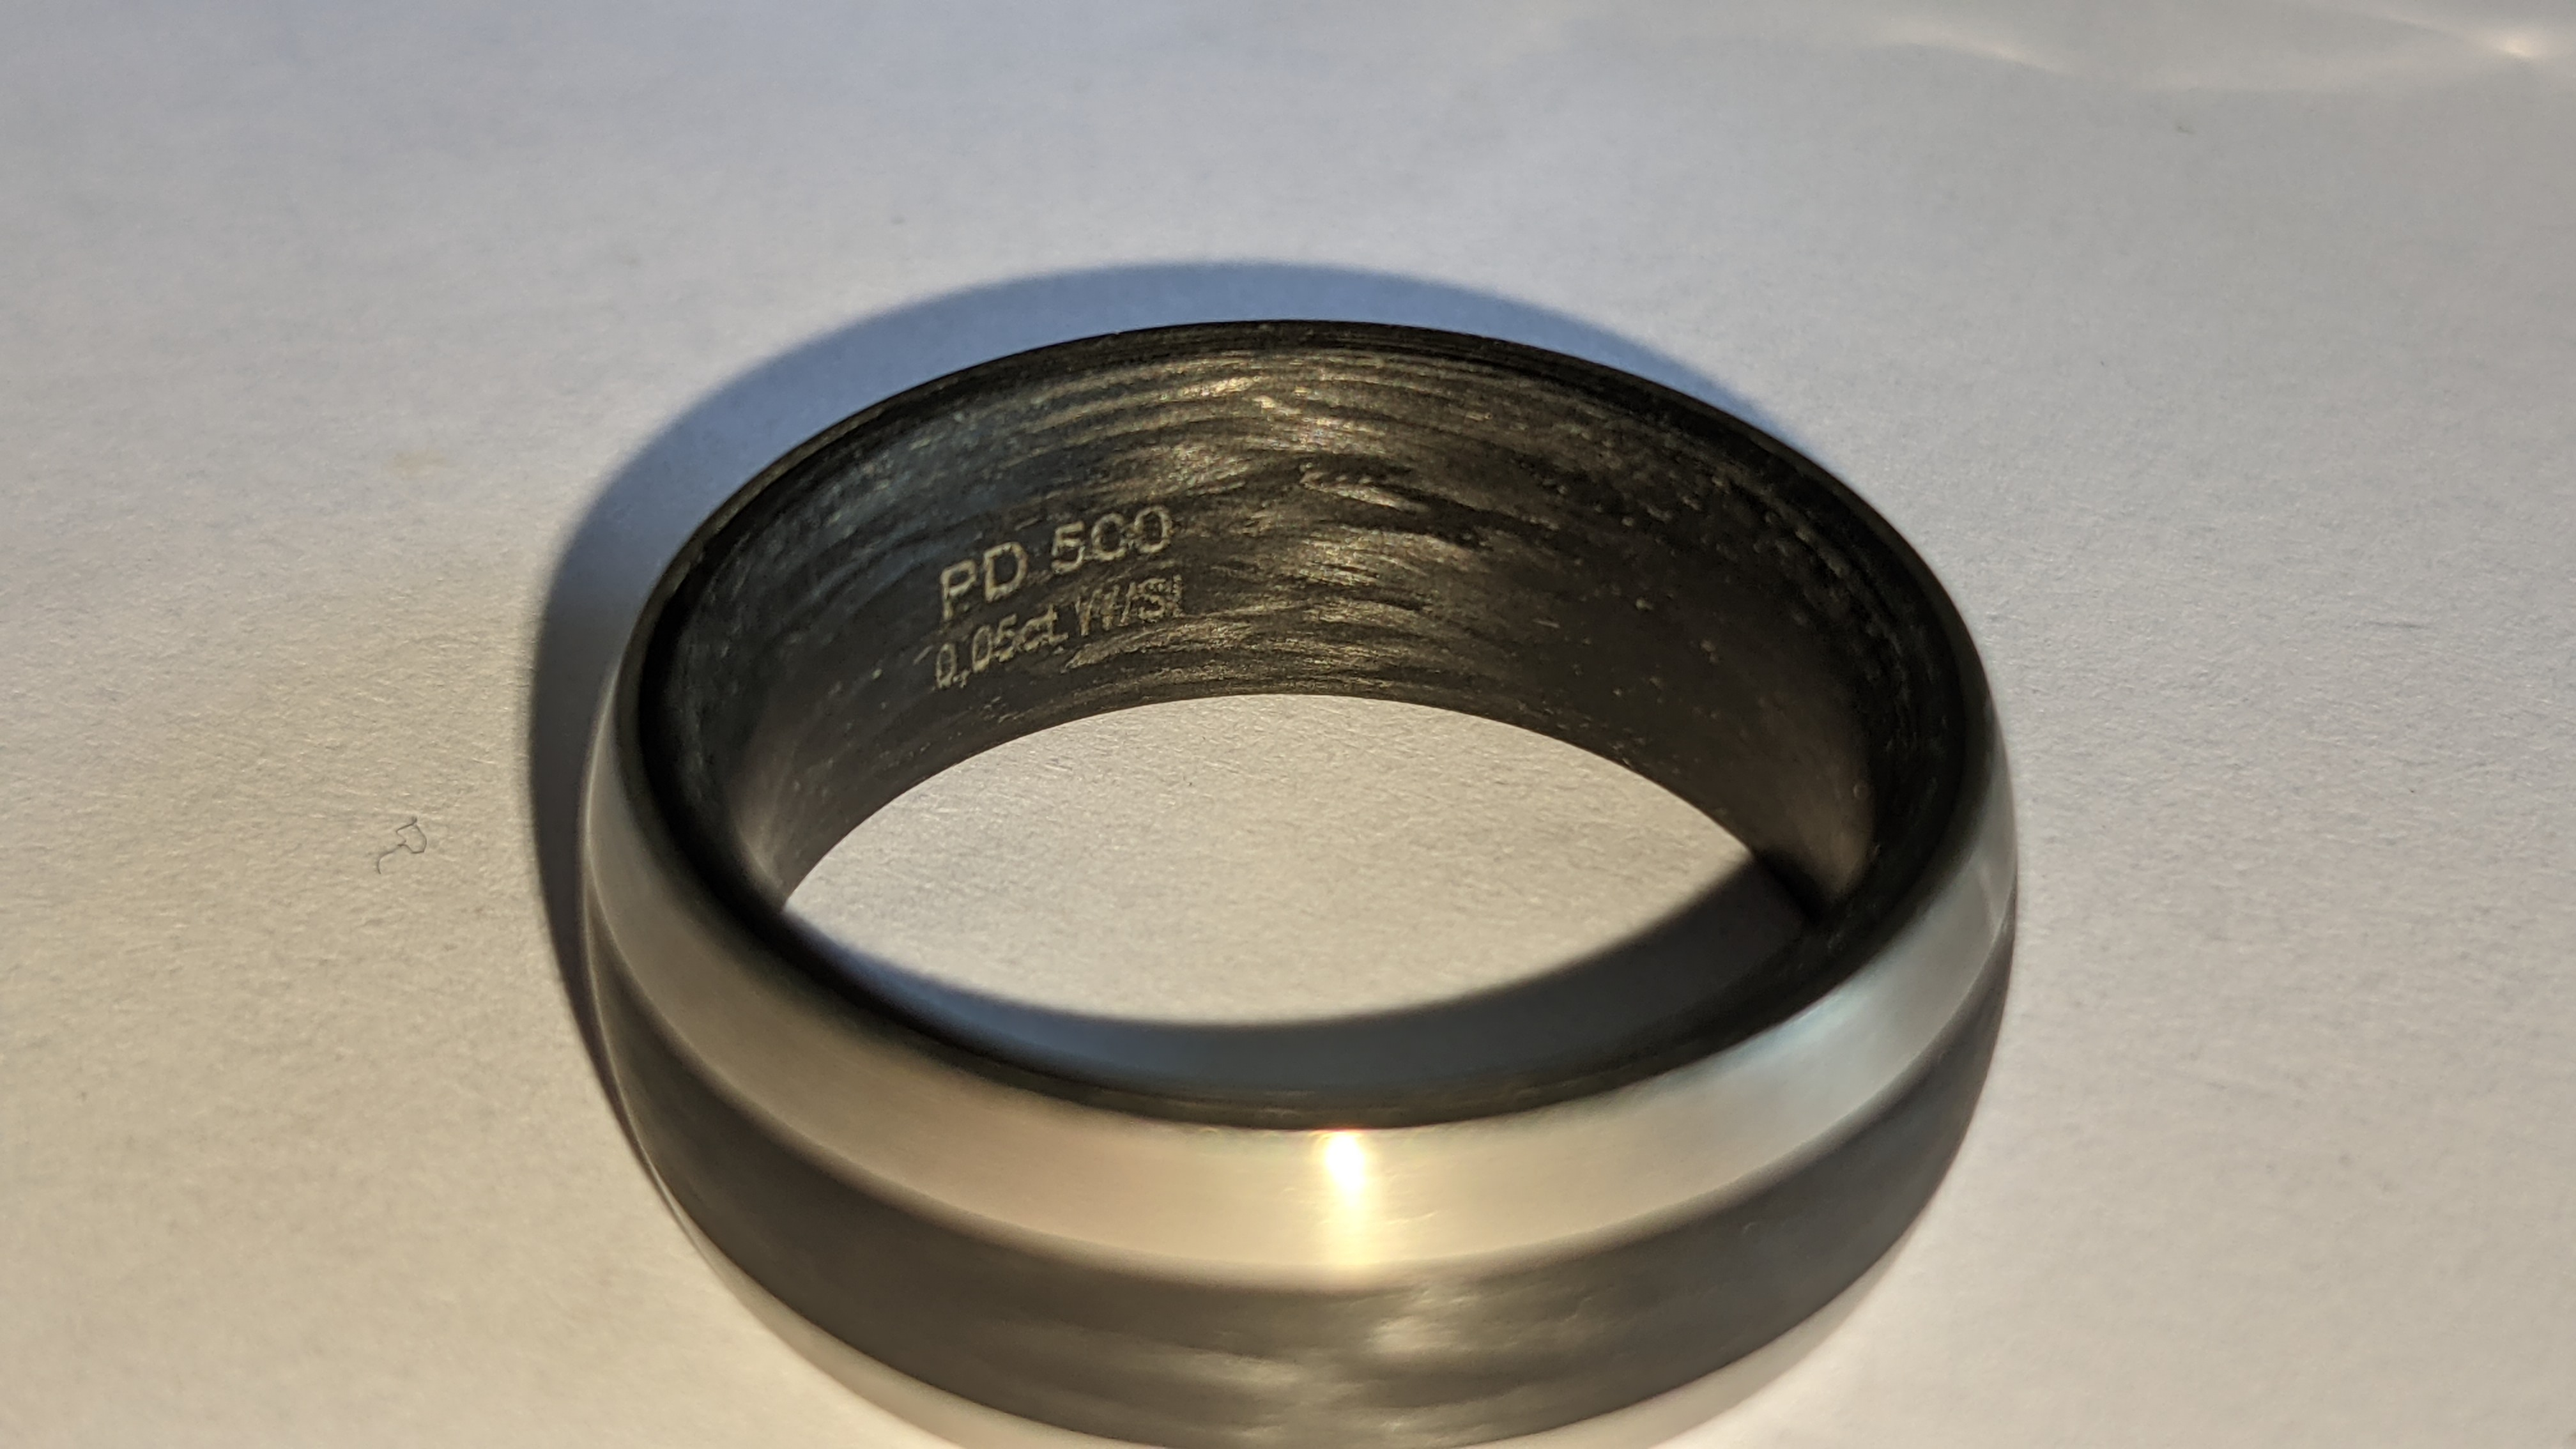 Ring understood to be made of Palladium, carbon & diamond - no price sticker or labelling on this ri - Image 7 of 13